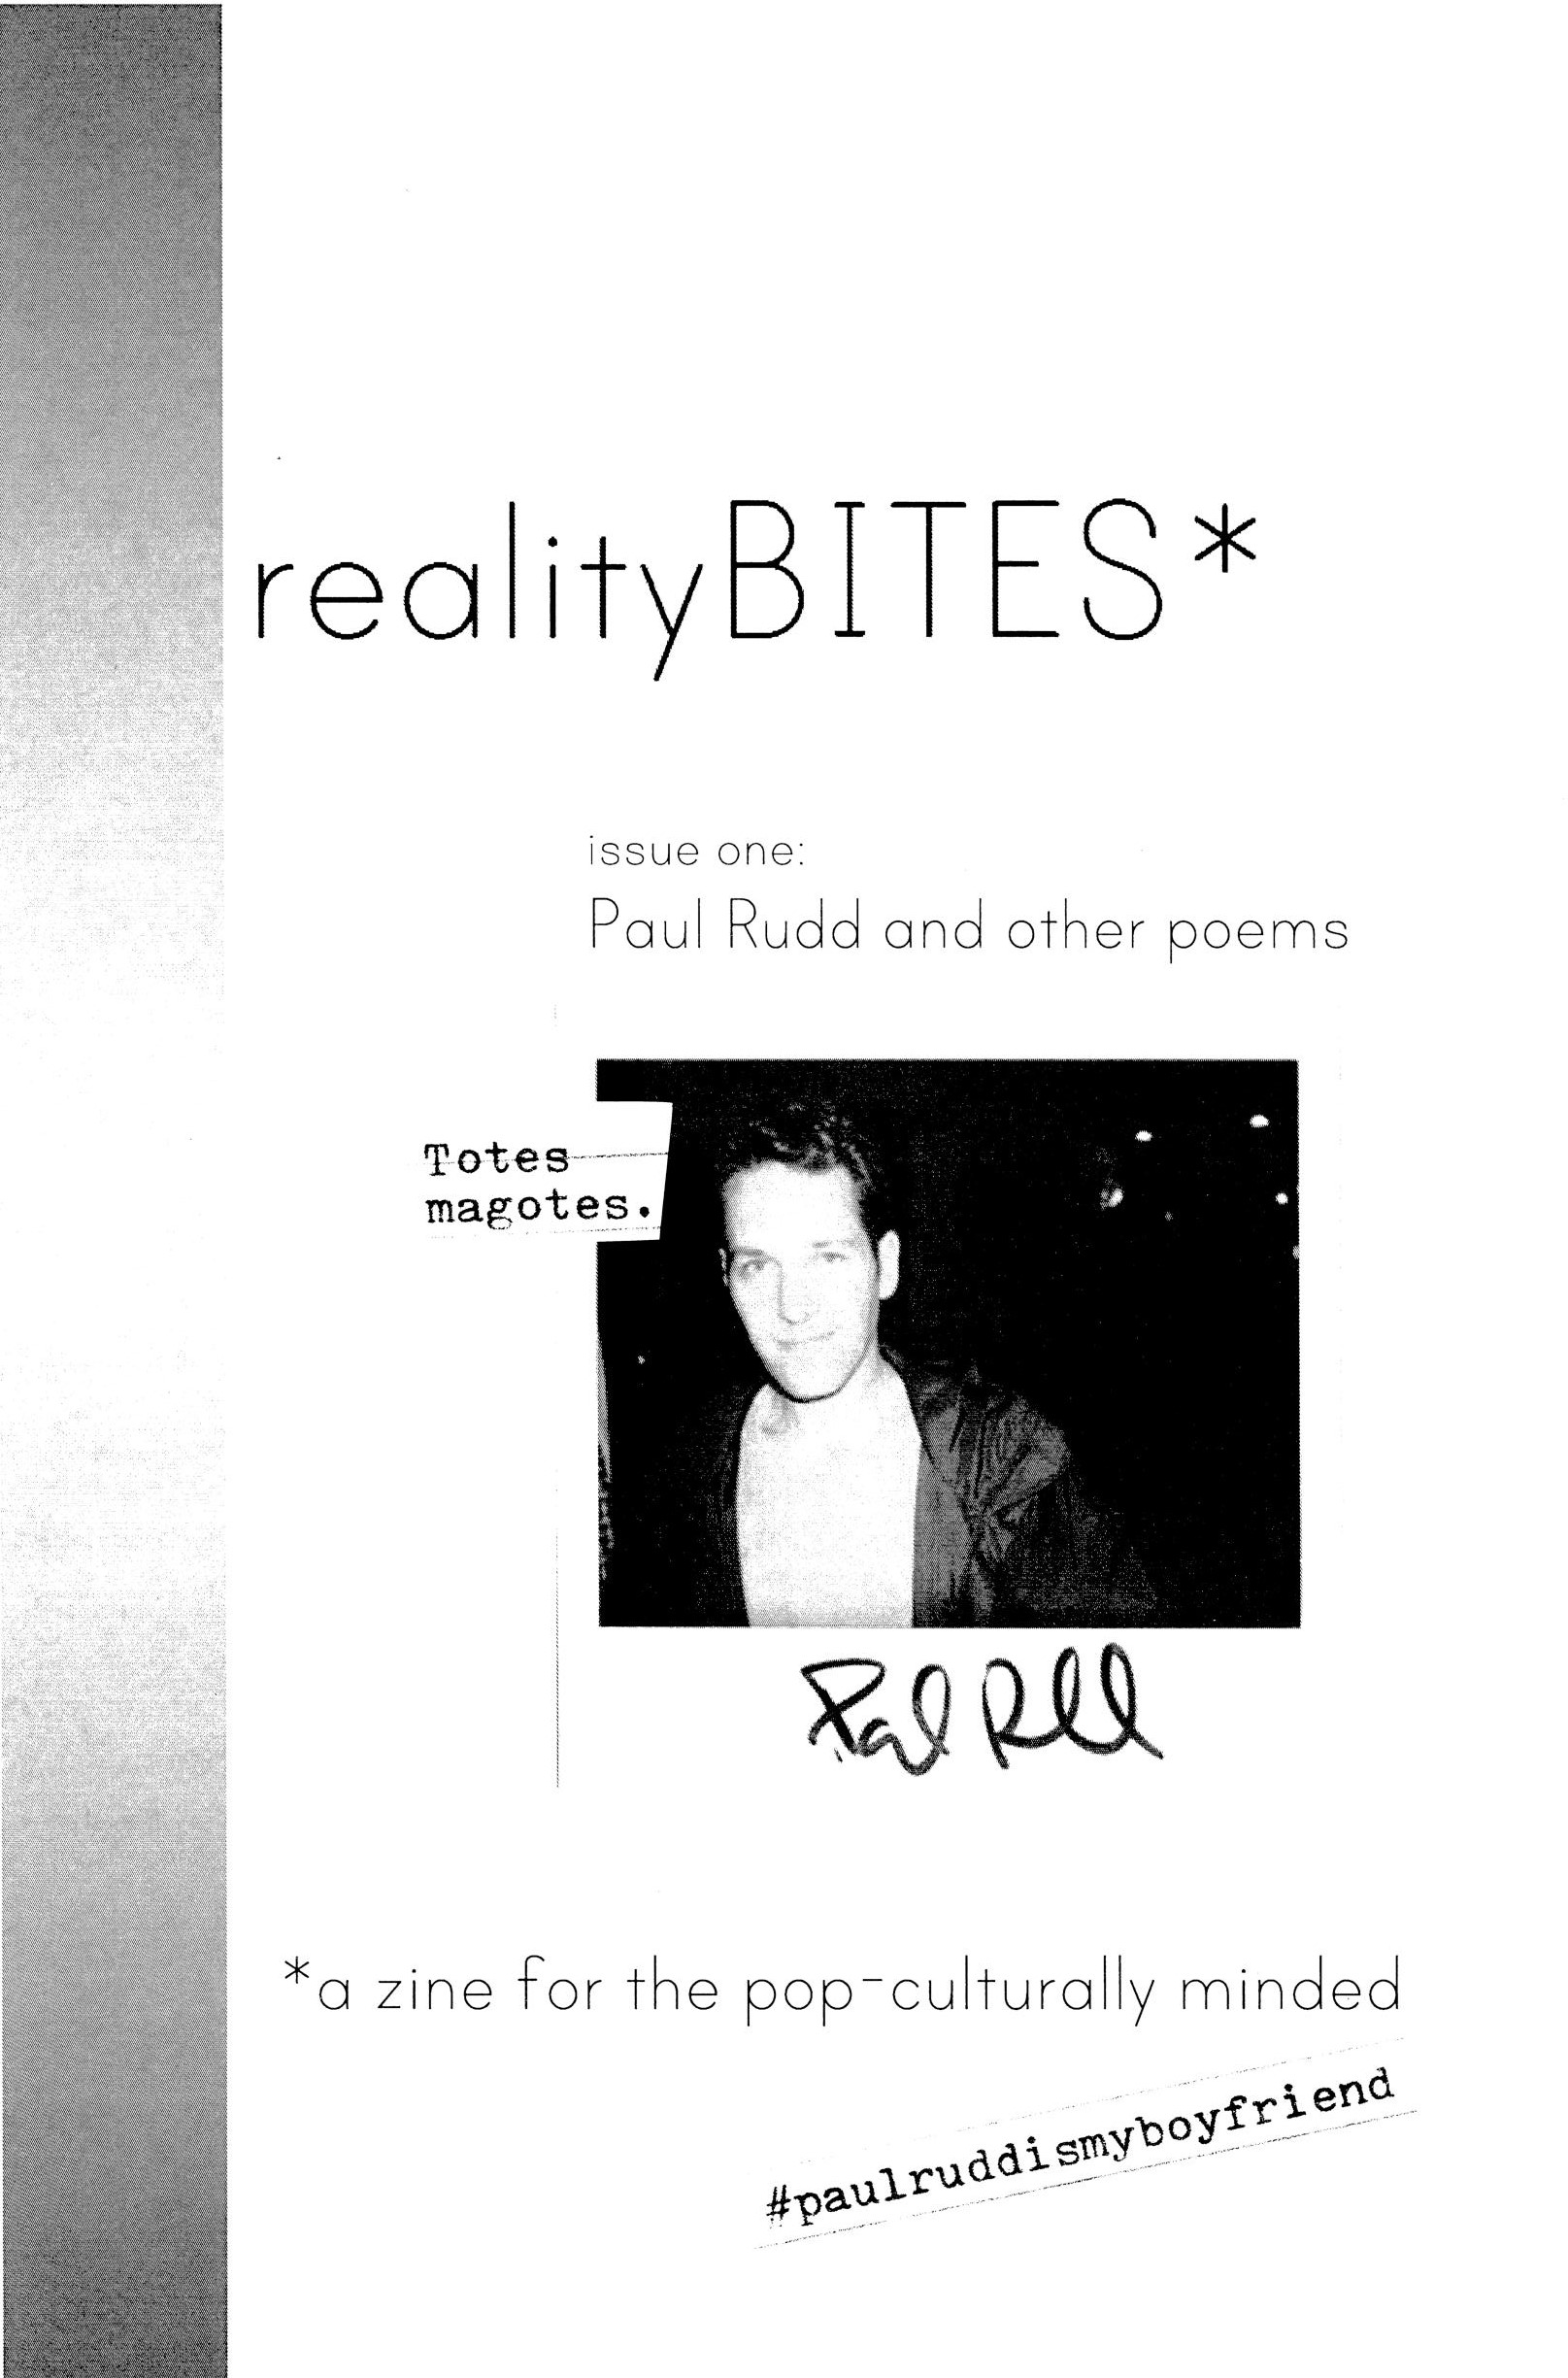 realityBITES | issue 1 - paul rudd and other poems